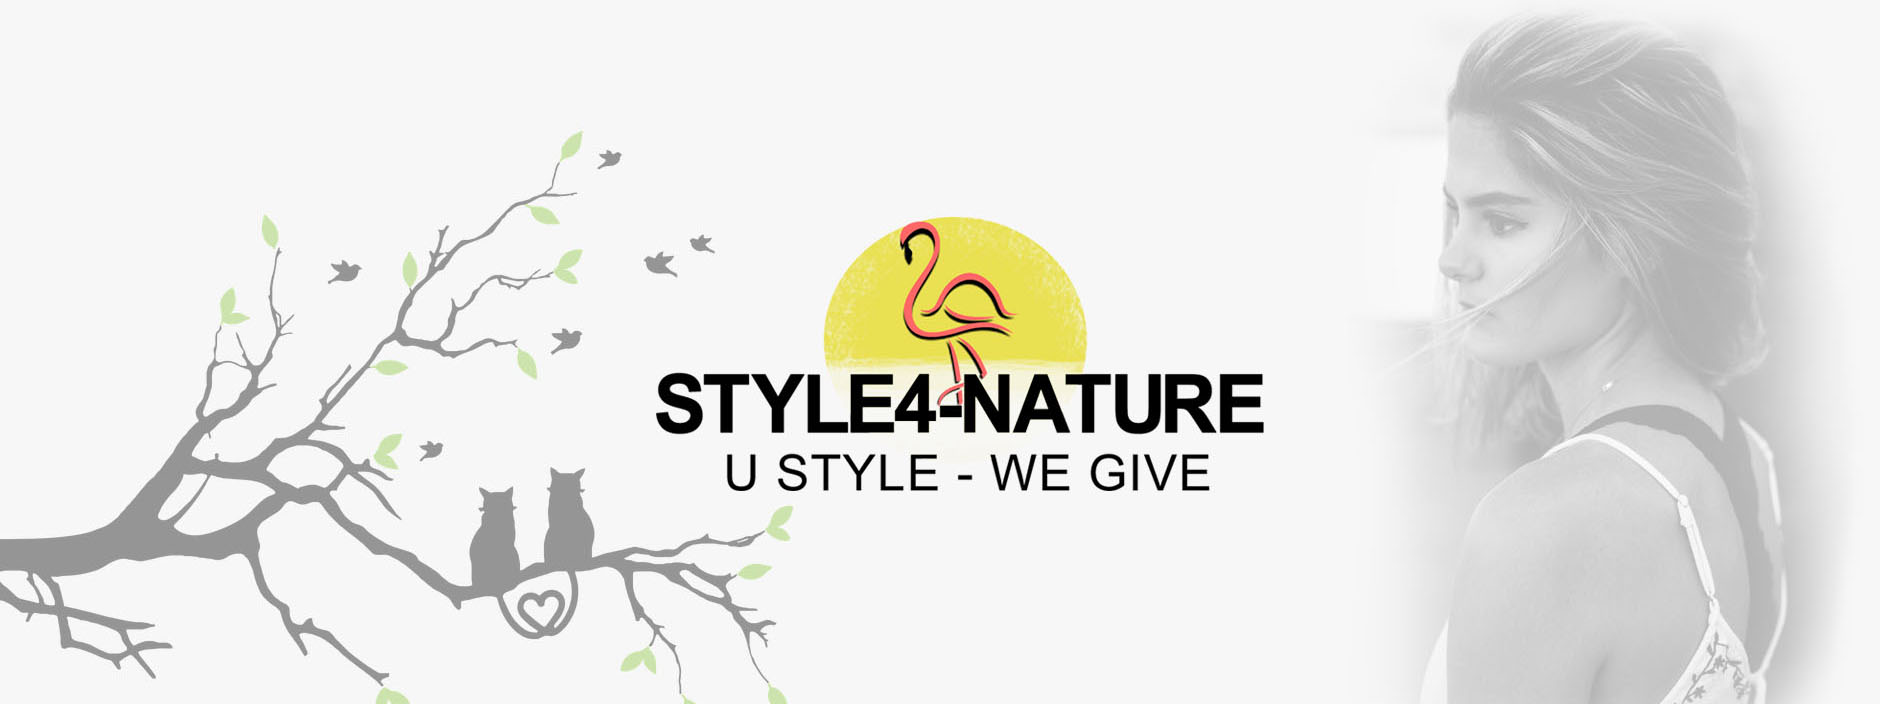 Style4-Nature